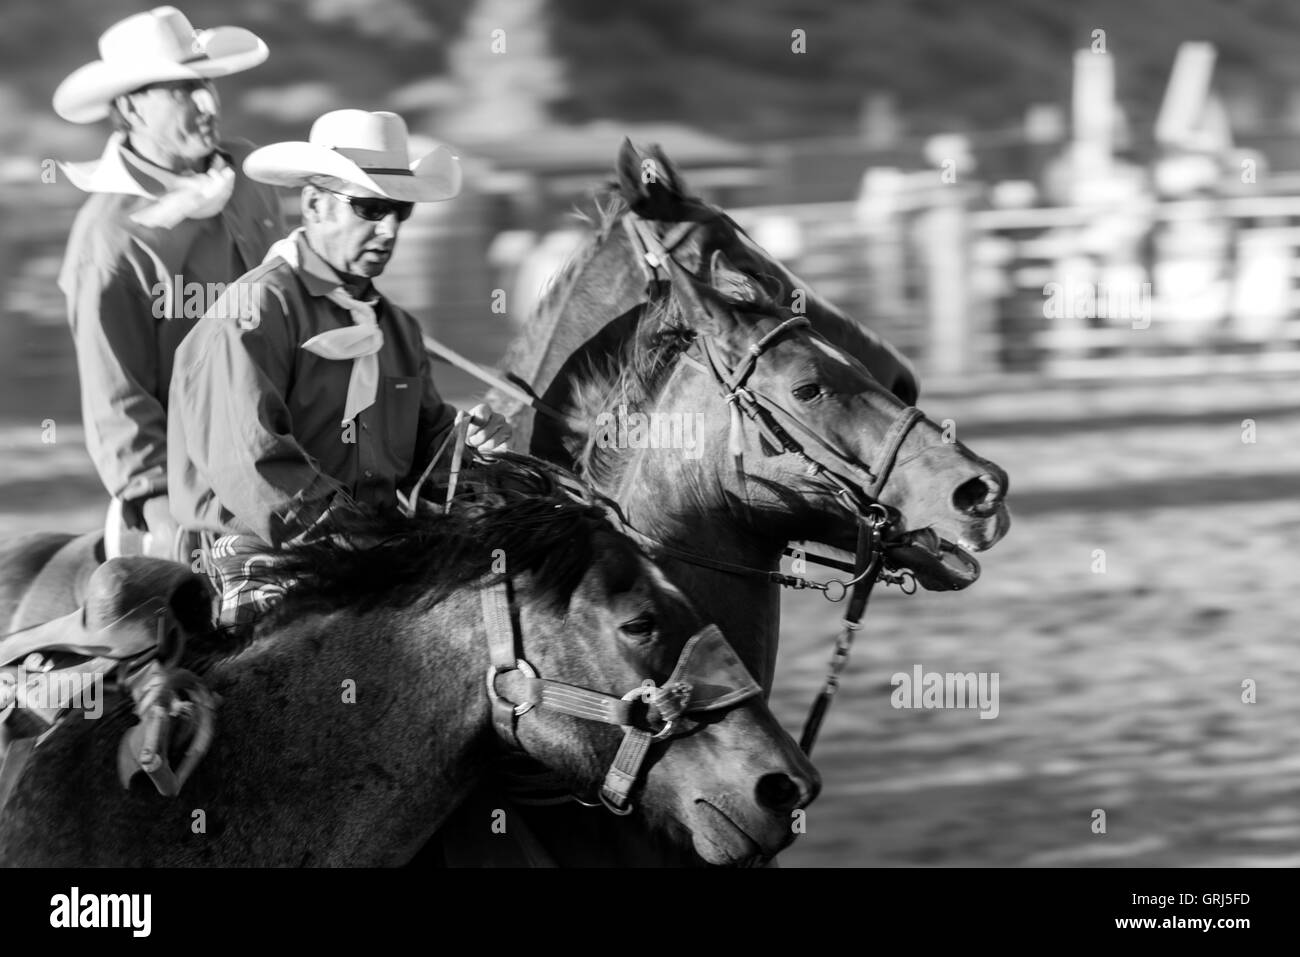 Action during the Saddle bronc riding competition at Snowmass Rodeo, Snowmass, Colorado - Stock Image